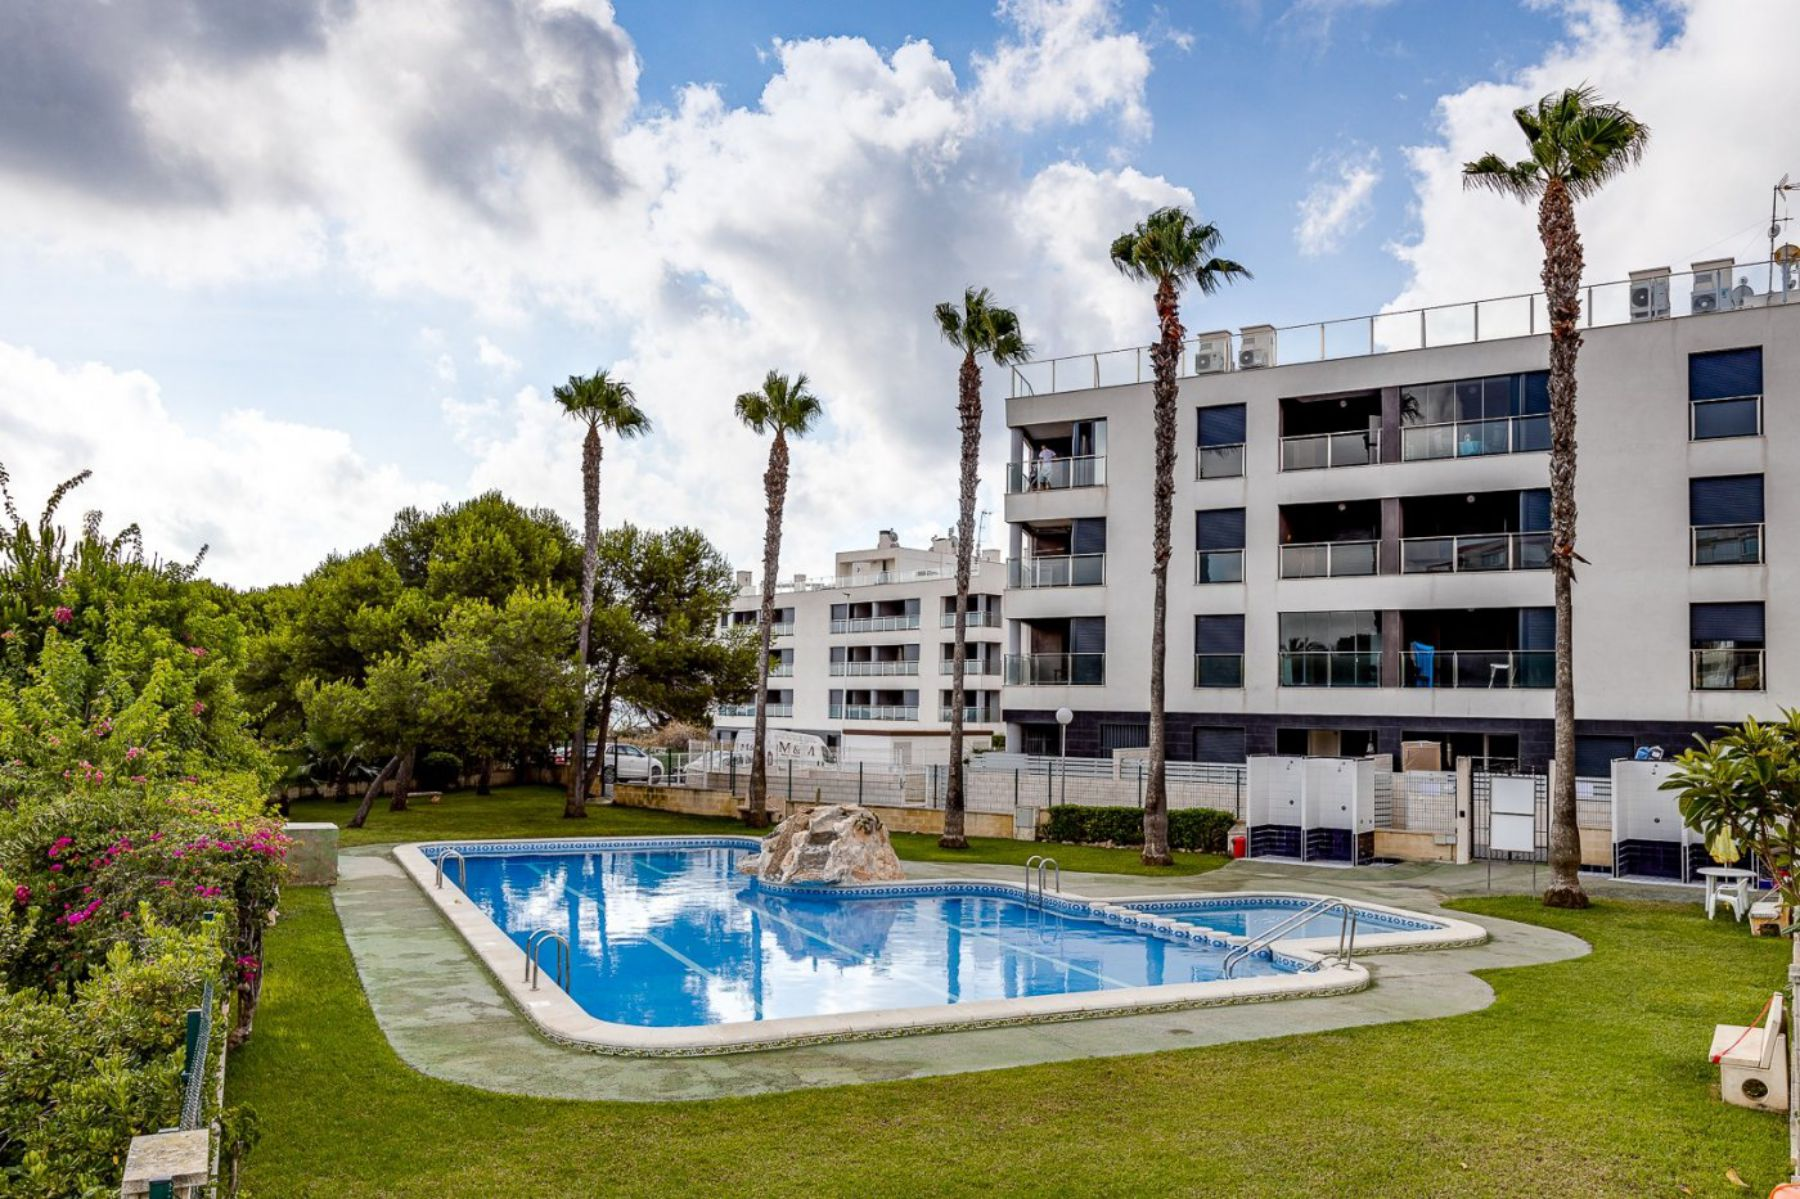 2 Bedrooms Apartment For Sale 200 Meters from La Mata Beach - Torrevieja